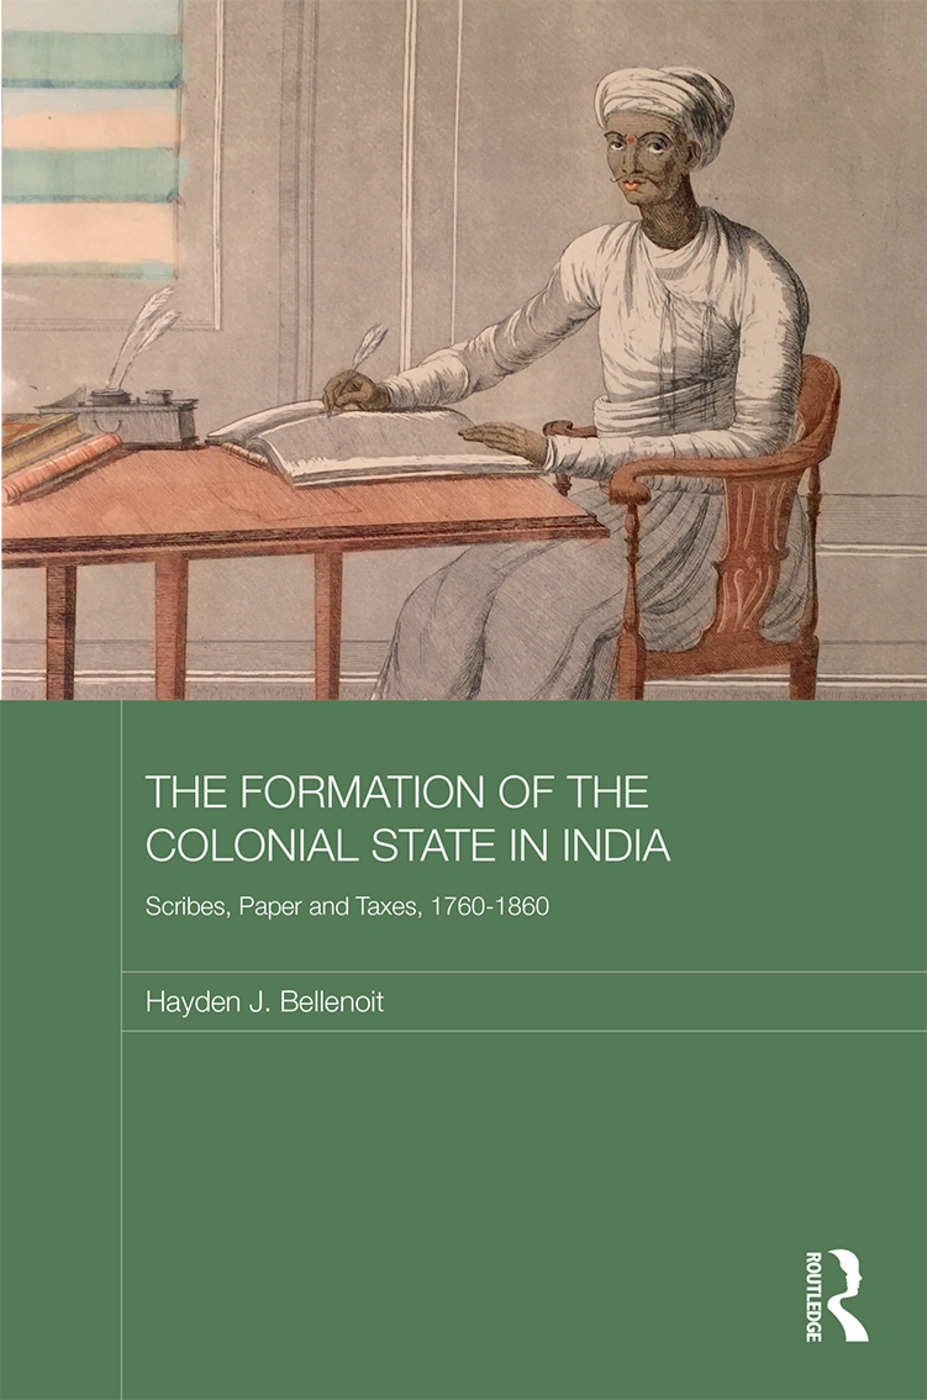 The Formation of the Colonial State in India: Scribes, Paper and Taxes, 1760-1860 book cover